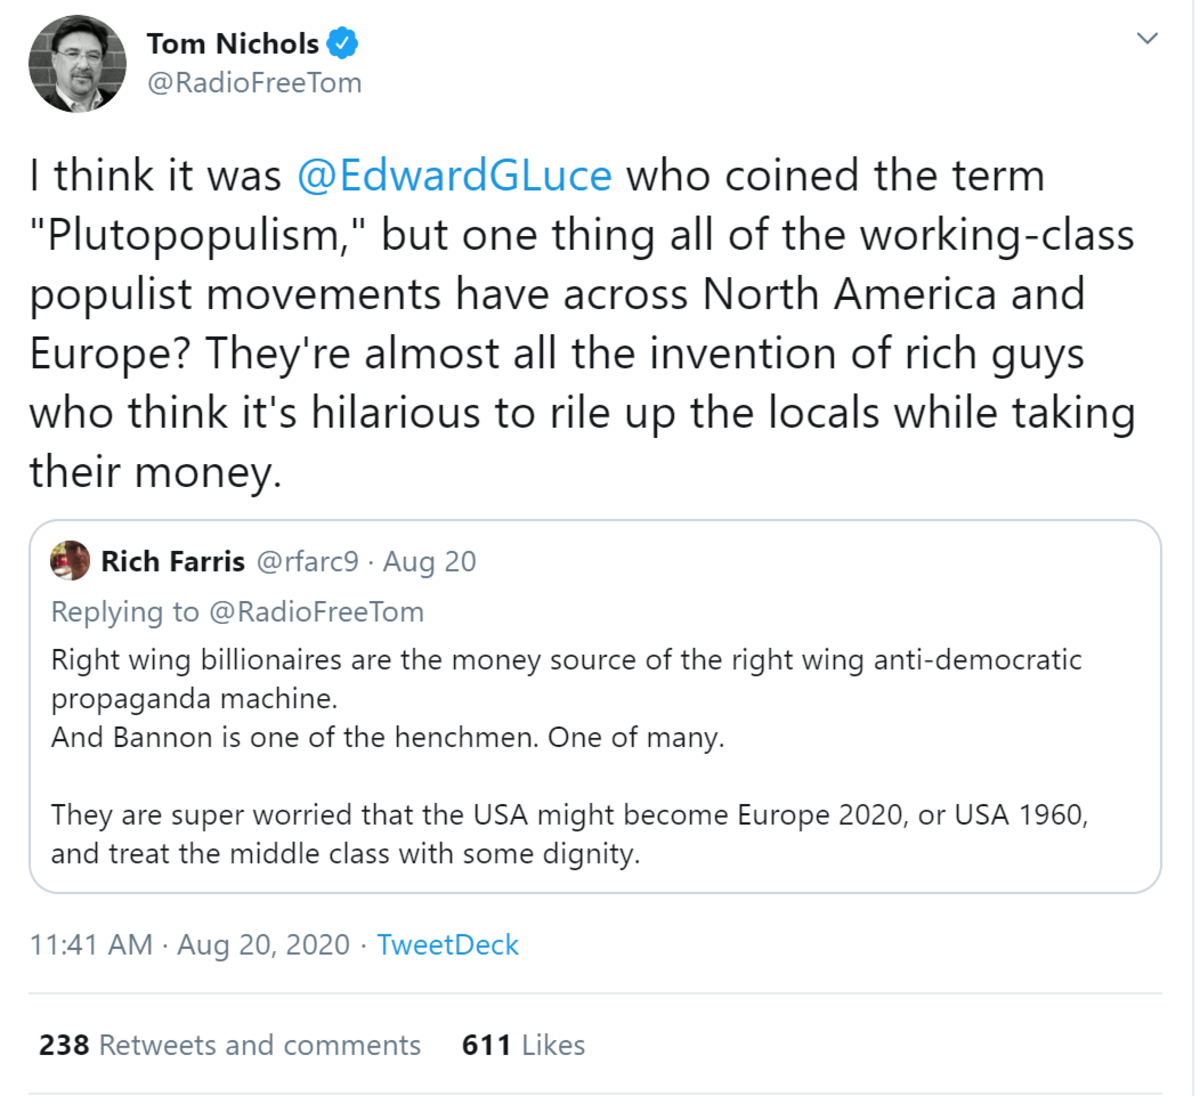 What Is Pluto-populism?